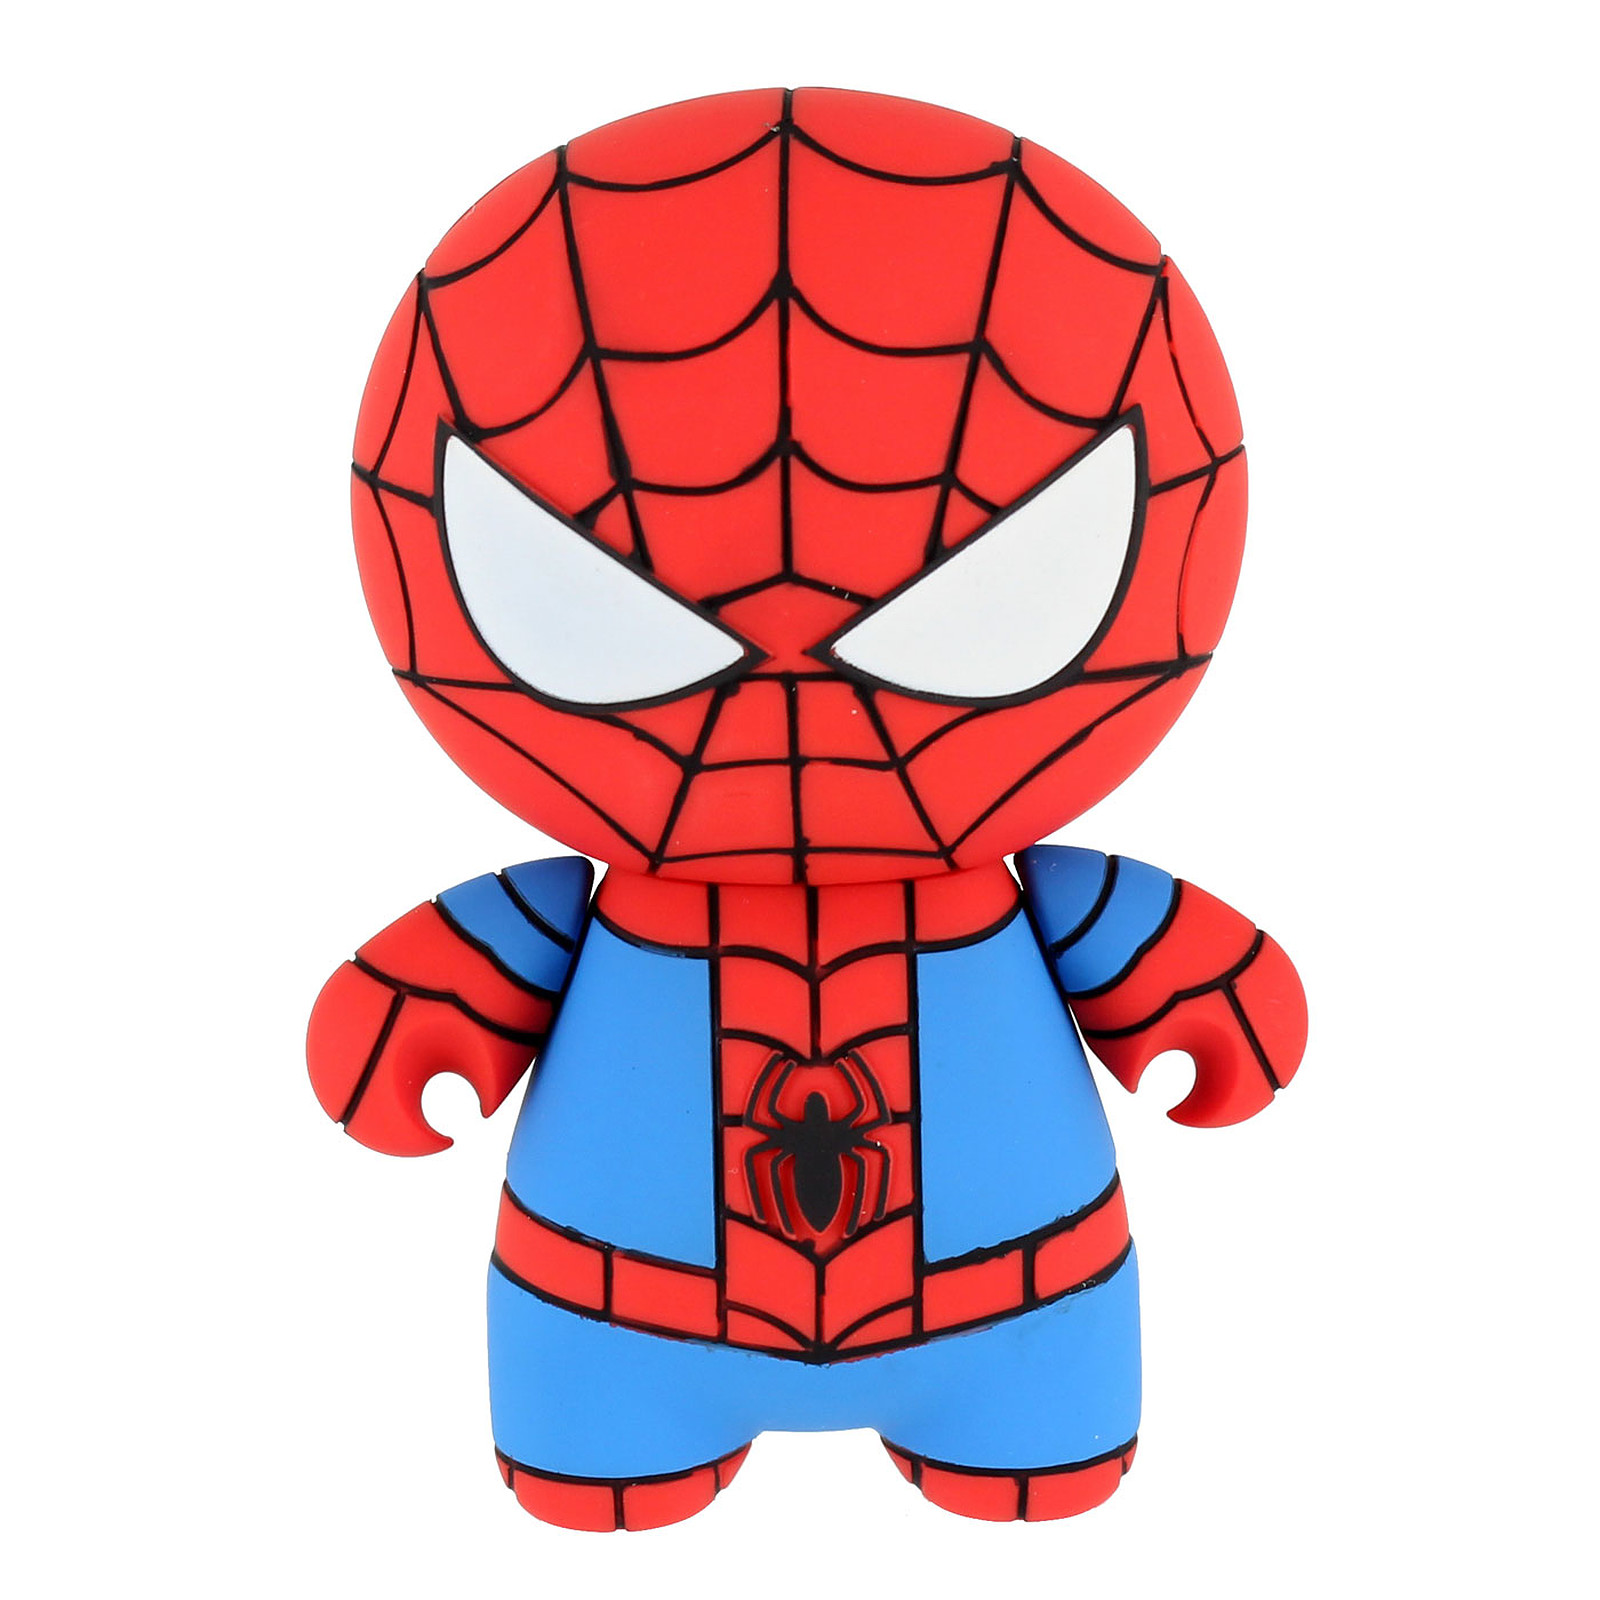 Lazerbuilt Kawaii Powerbank Marvel Spiderman 2600 mAh